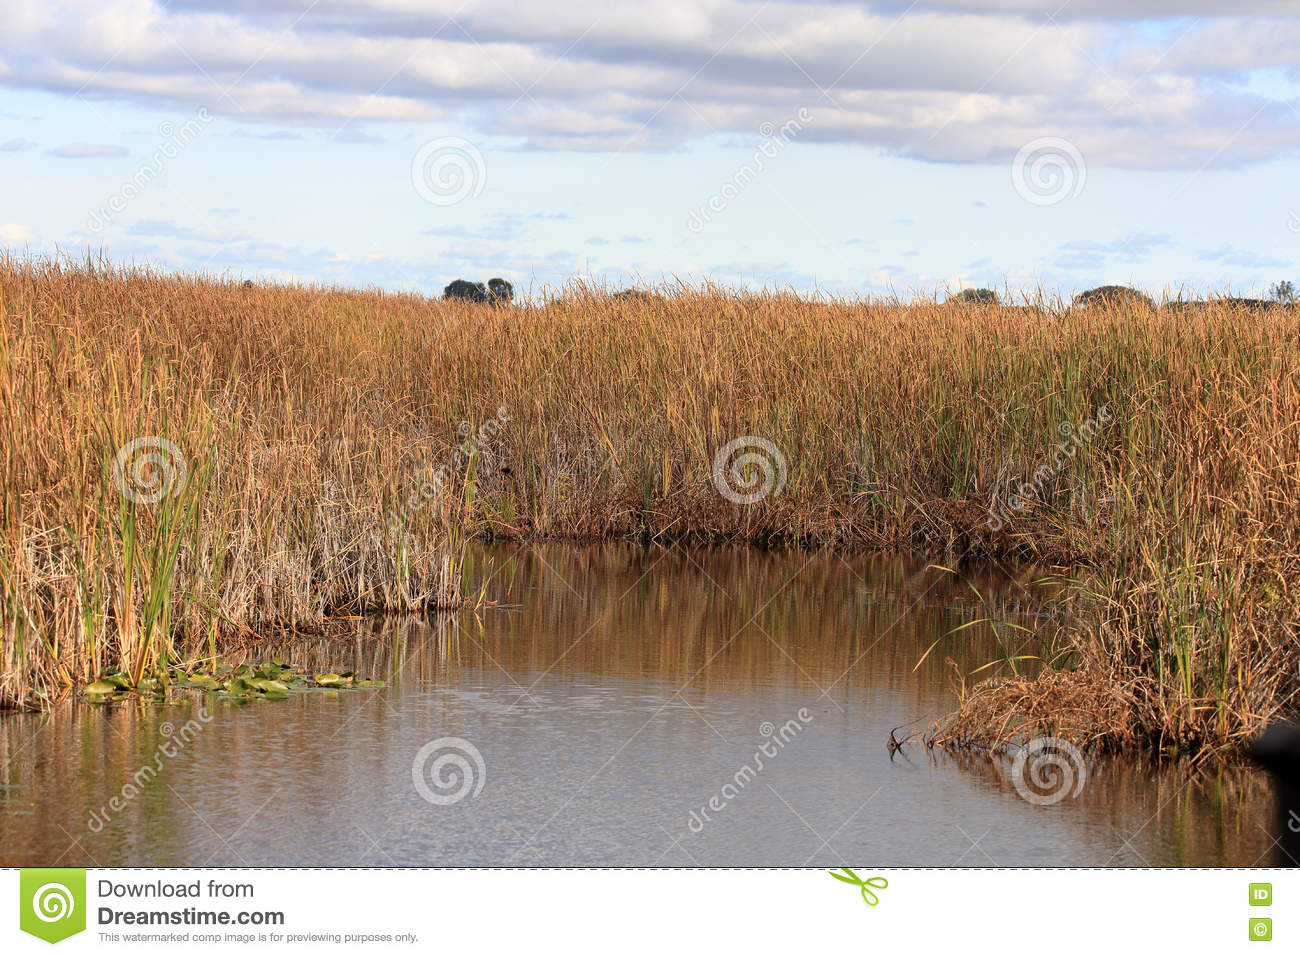 Marsh grasses and reeds reflected in a pool